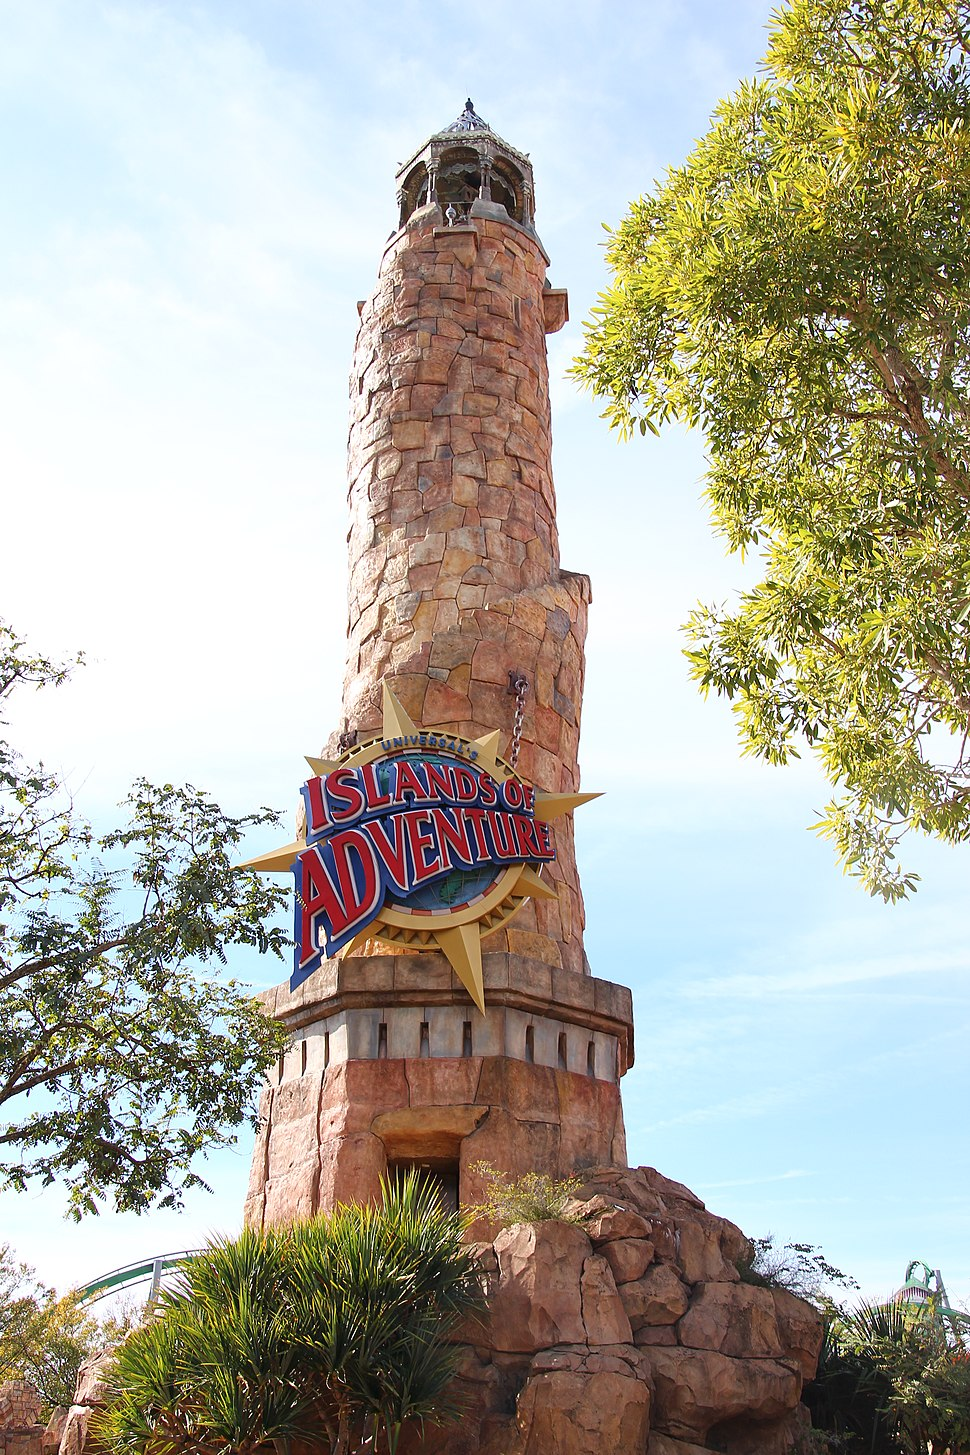 Universal-Islands-of-Adventure-Lighthouse-9068